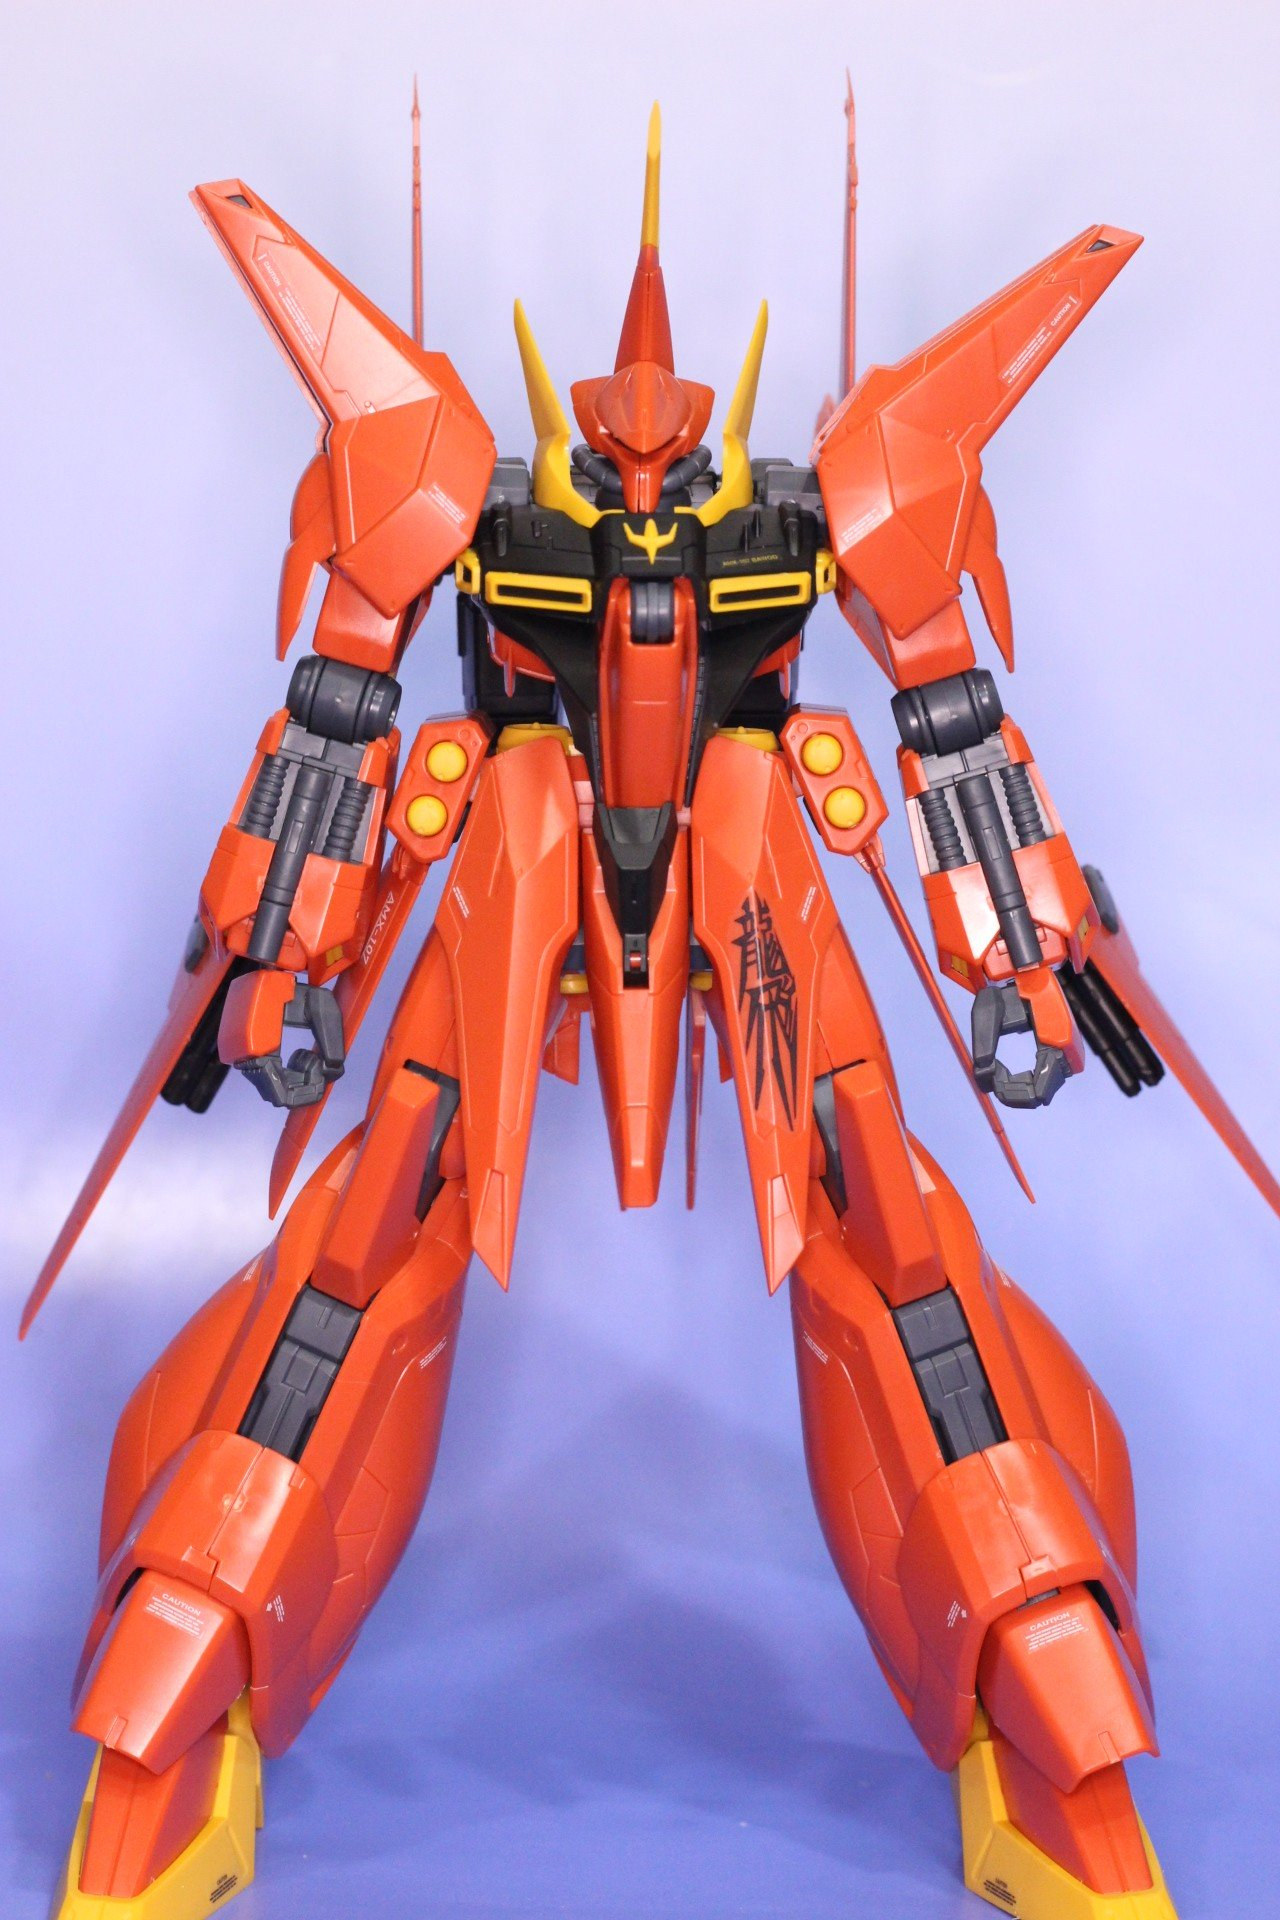 FULL DETAILED REVIEW] RE100 AMX 107 BAWOO: No.55 Big Size